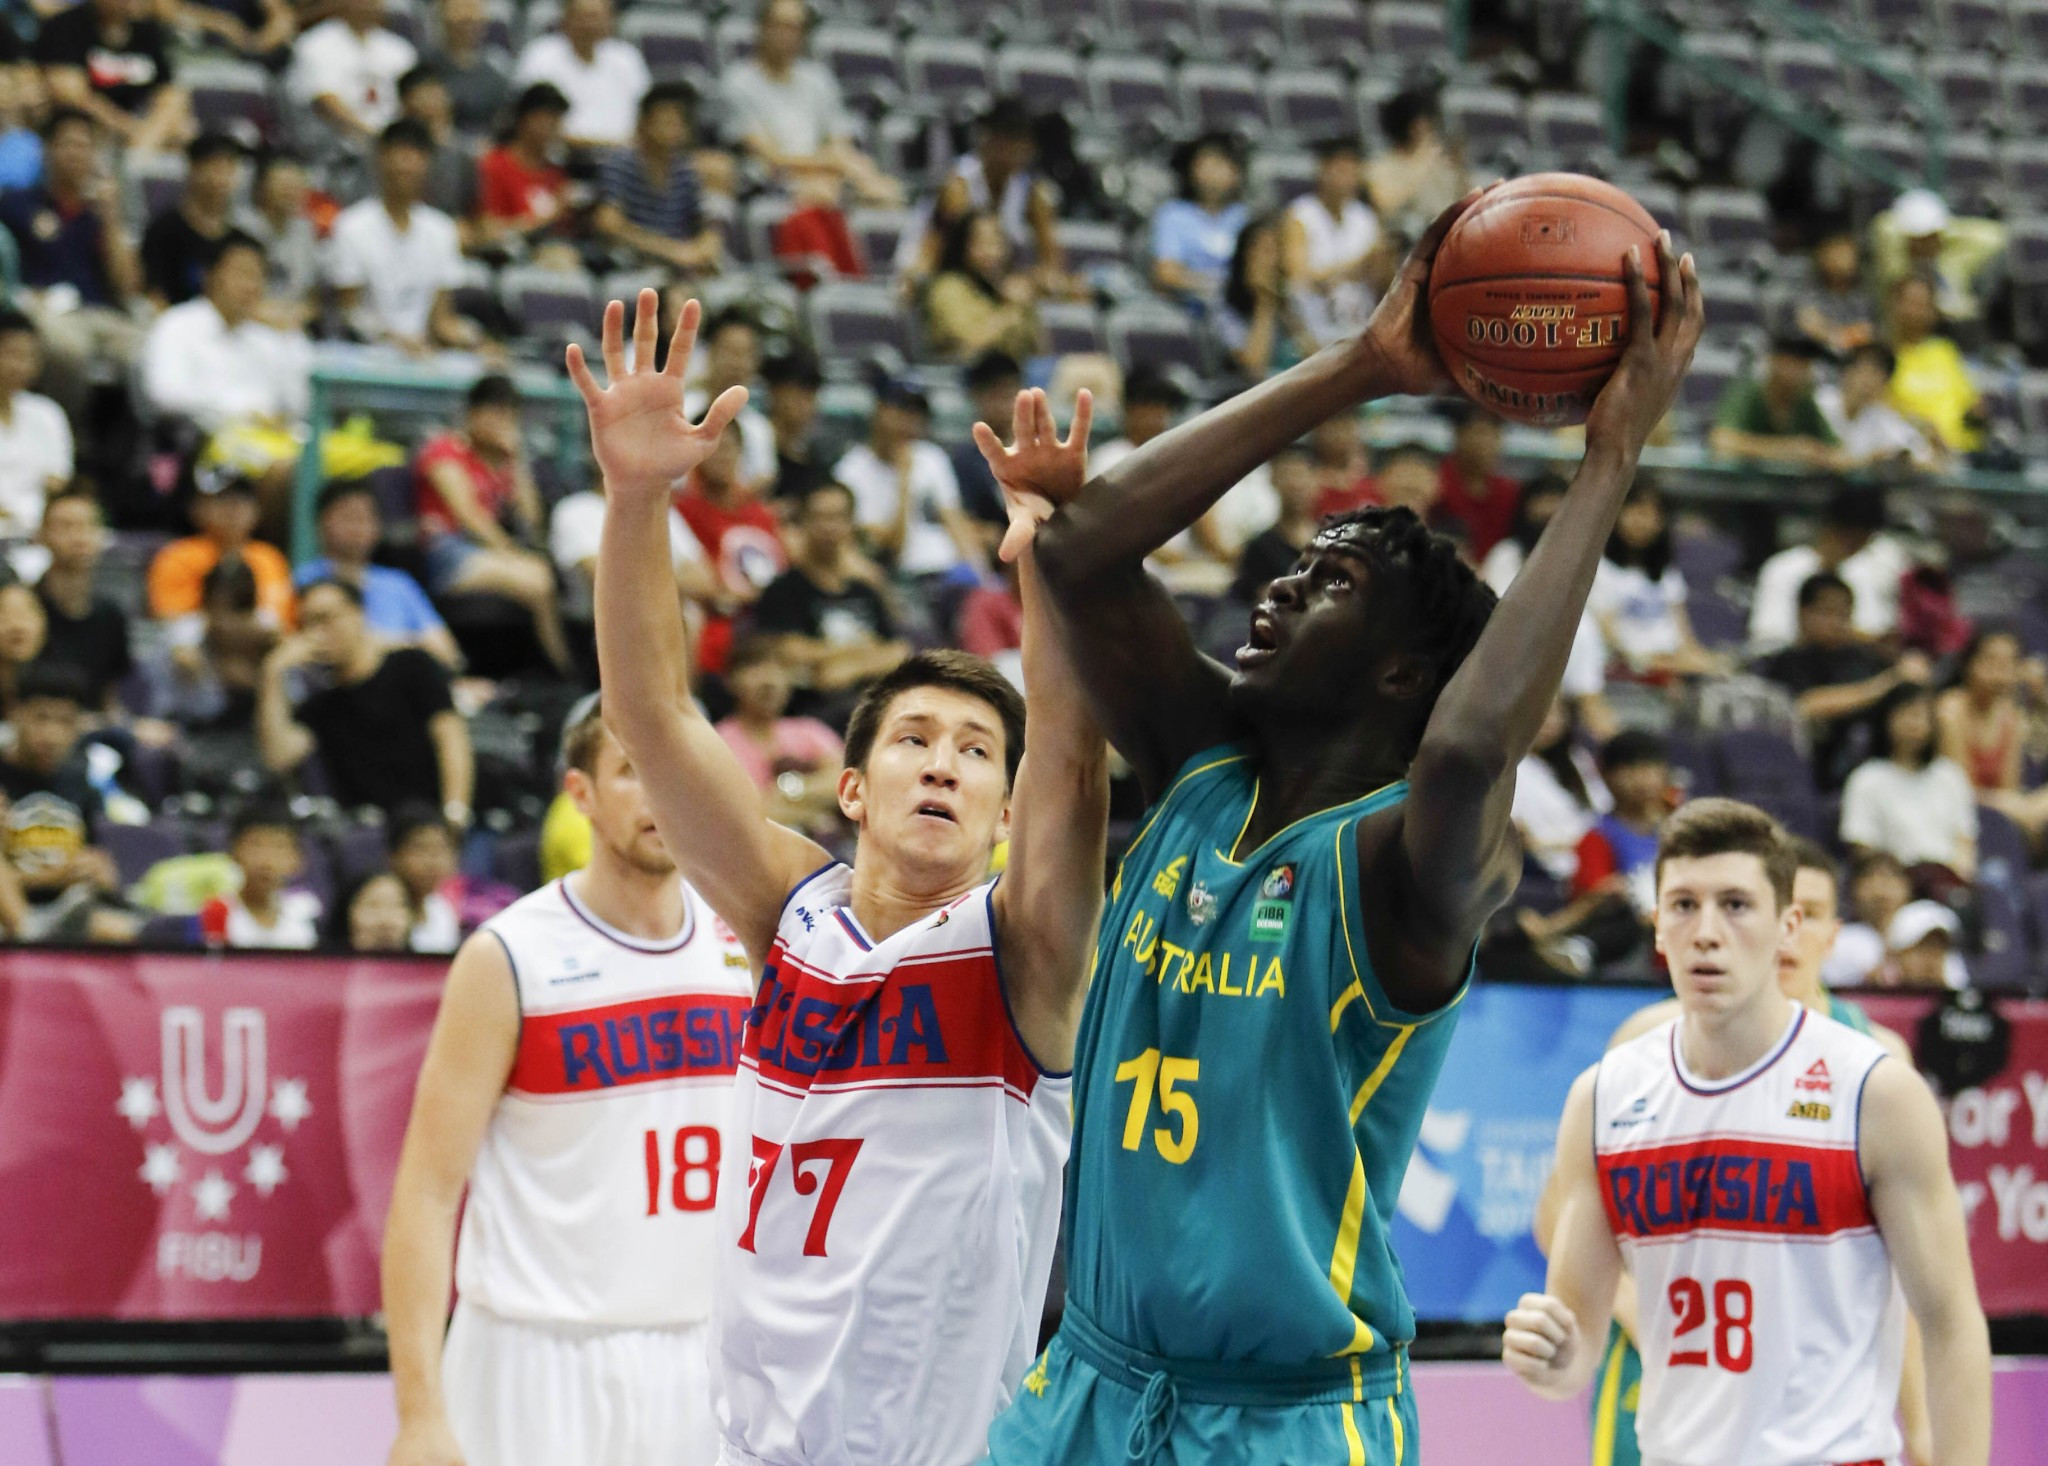 insidethegames is reporting LIVE from the Summer Universiade in Taipei